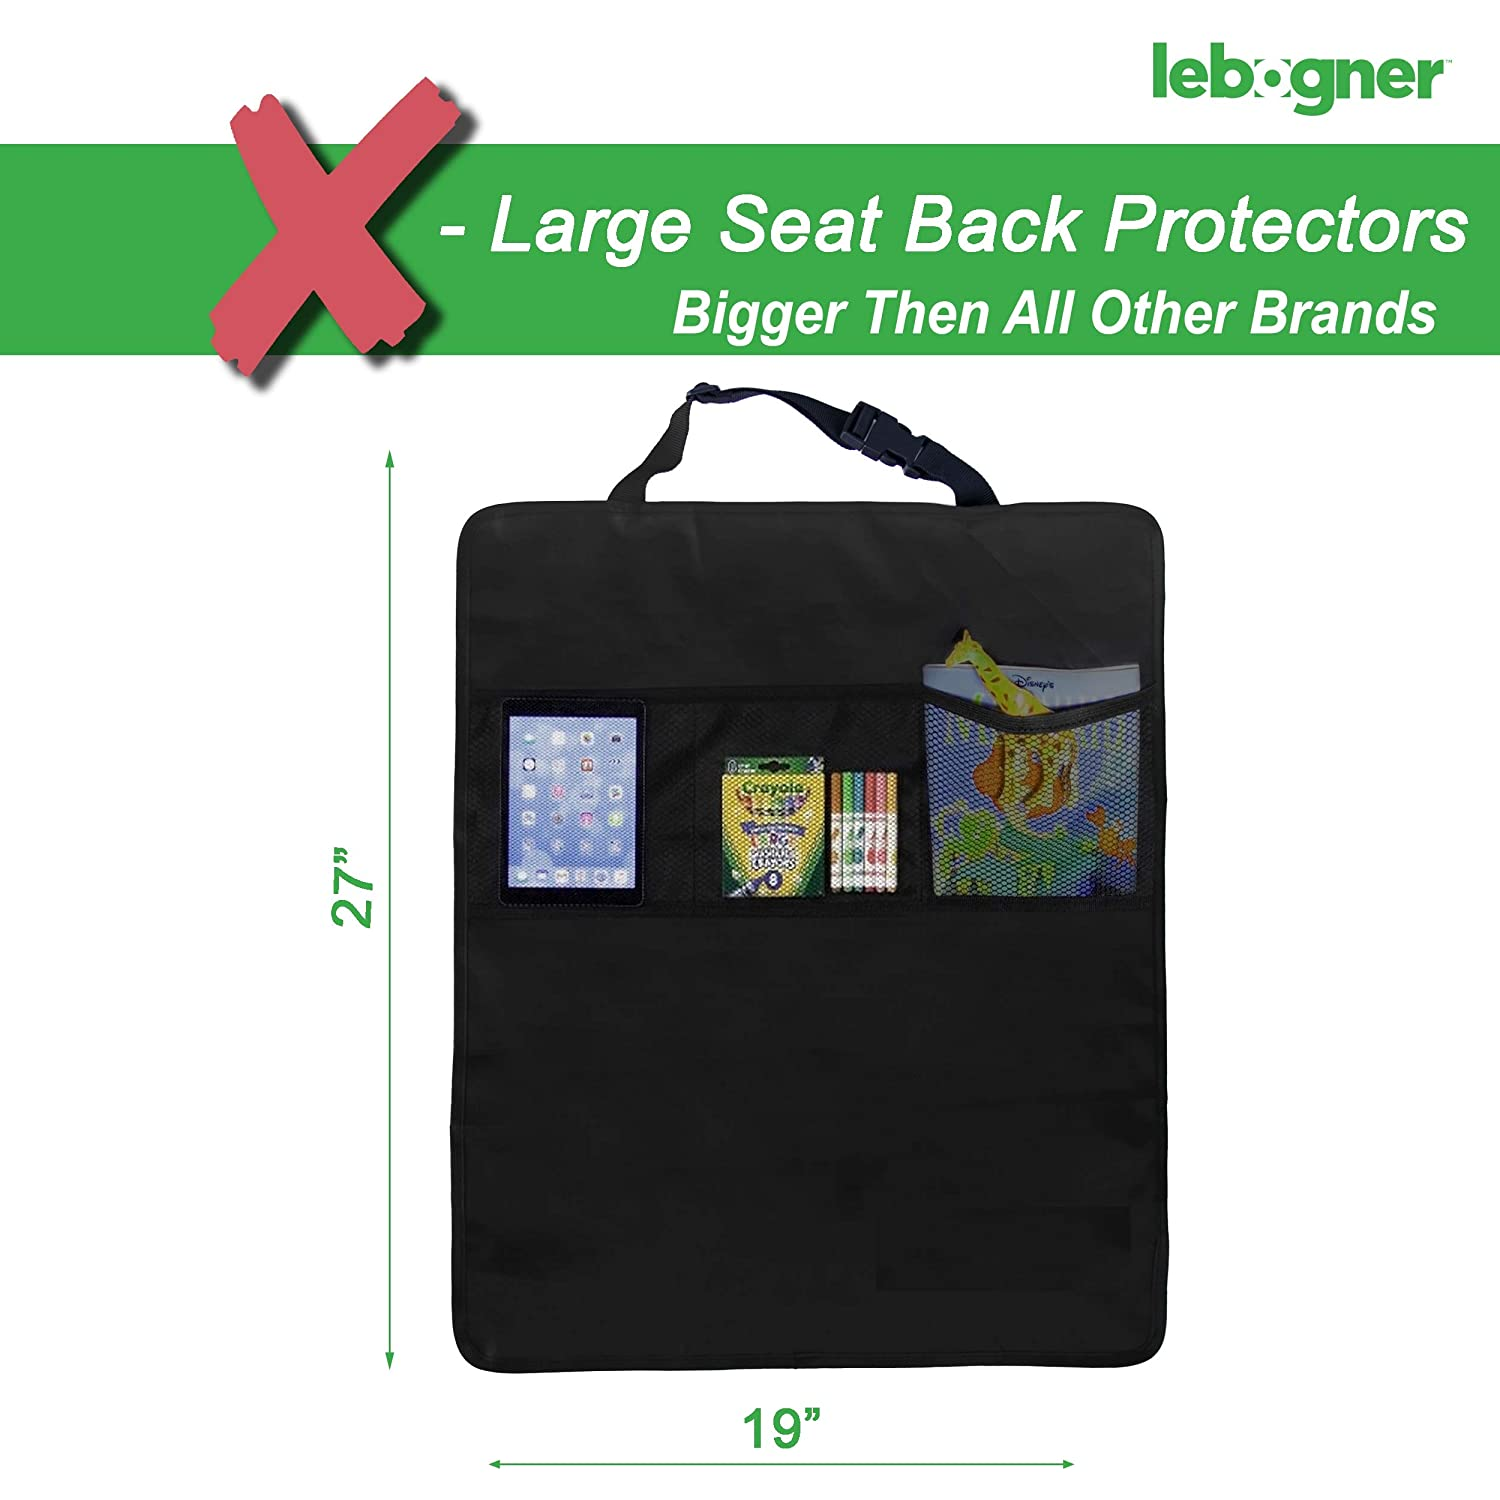 Backseat Child Kick Guard Seat Saver 2 Pack Waterproof Fabric Seat Cover For The Back Of Your Seat Lebogner Kick Mat Auto Seat Back Protectors X-Large Car Back Seat Protectors 3 Organizer Pockets